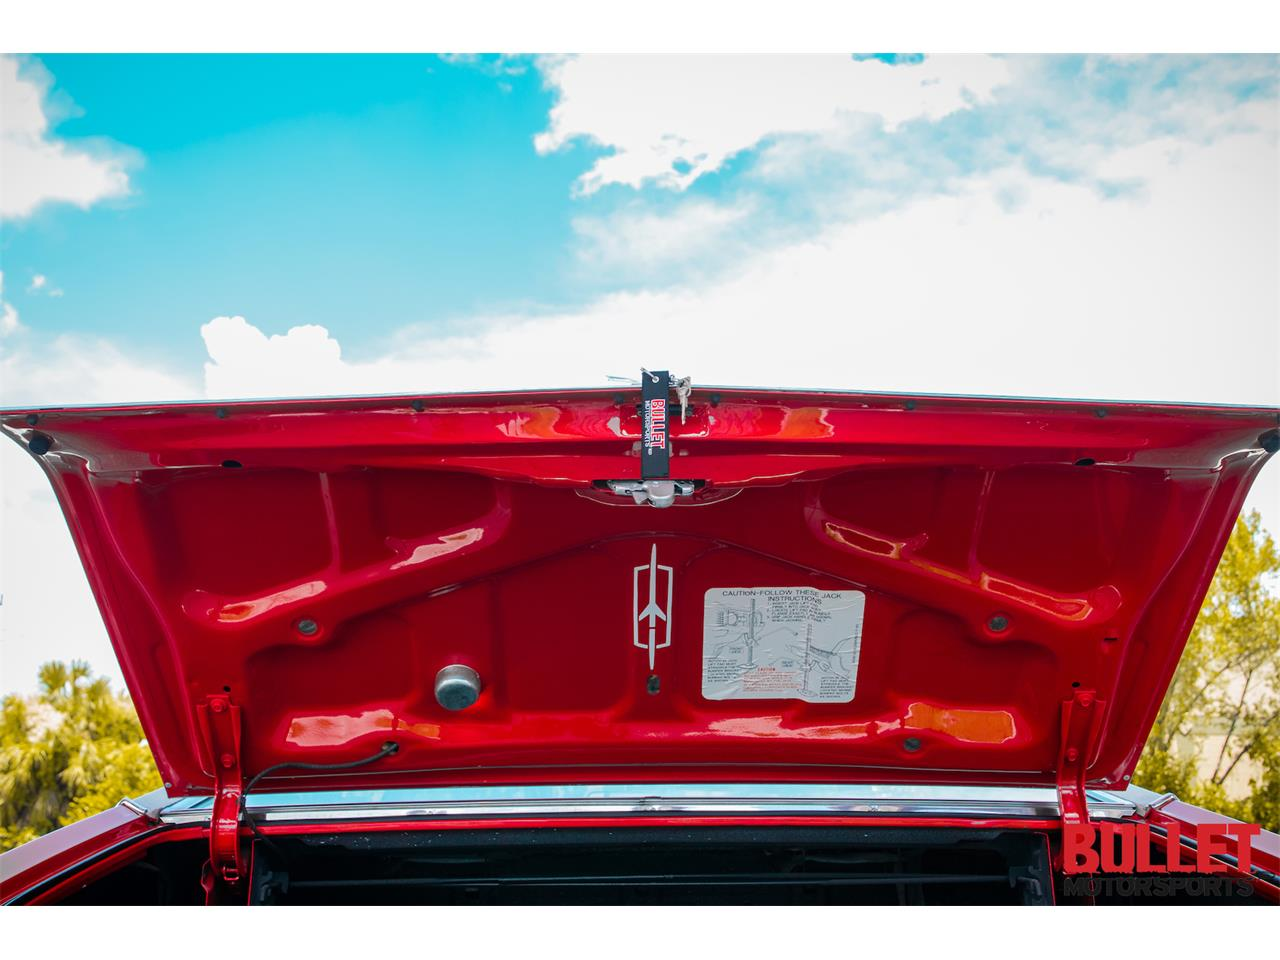 Large Picture of Classic '68 Oldsmobile Cutlass Supreme - $30,000.00 Offered by Bullet Motorsports Inc - PZS9